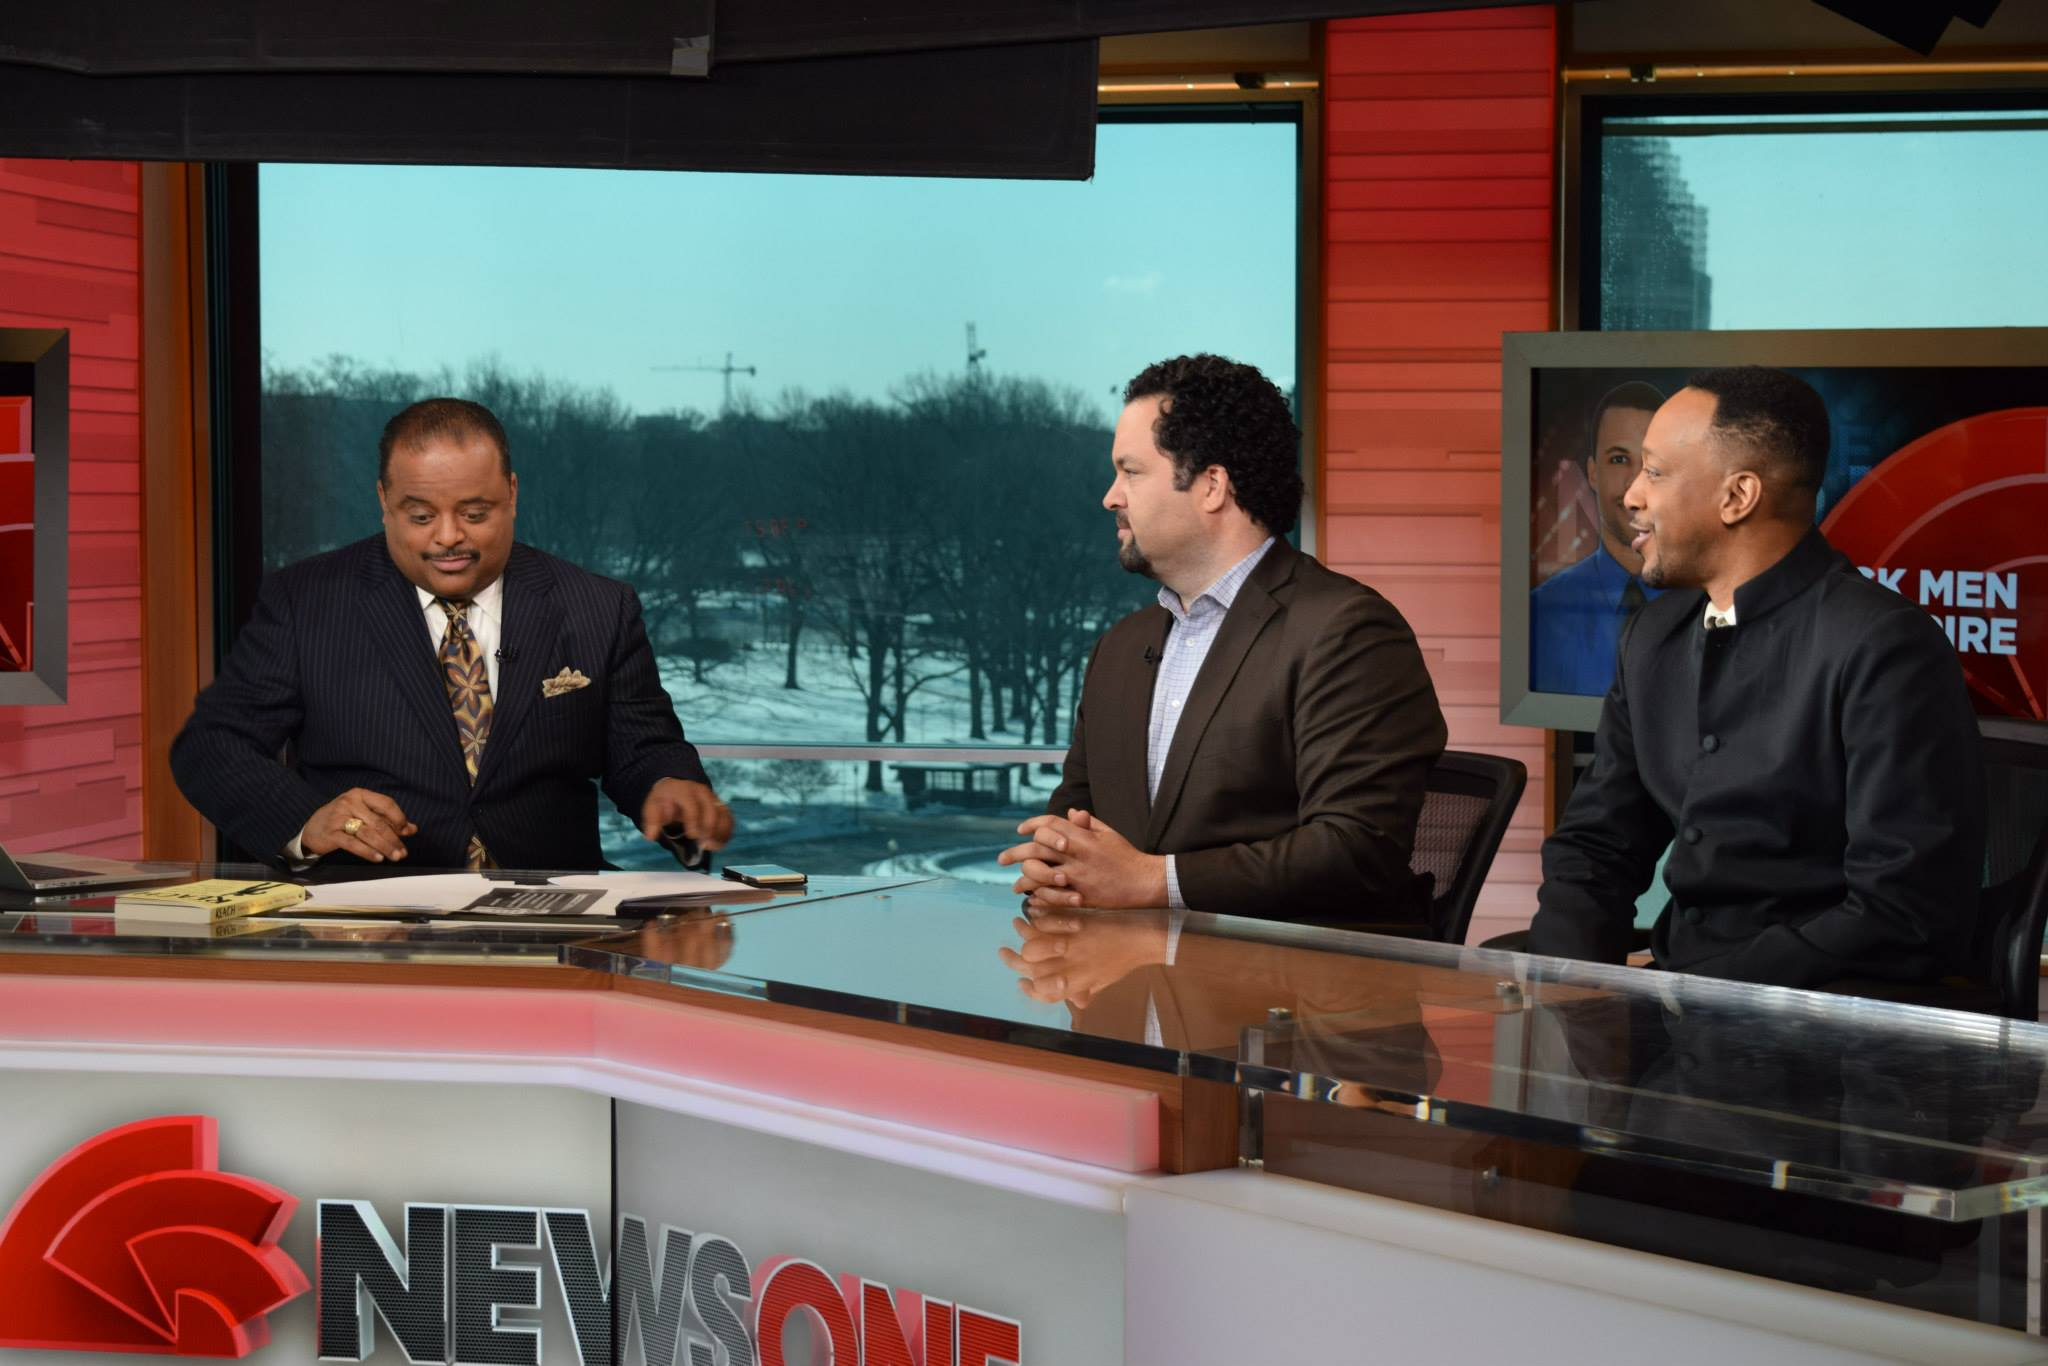 Trabian with Ben Jealous, former head of the NAACP